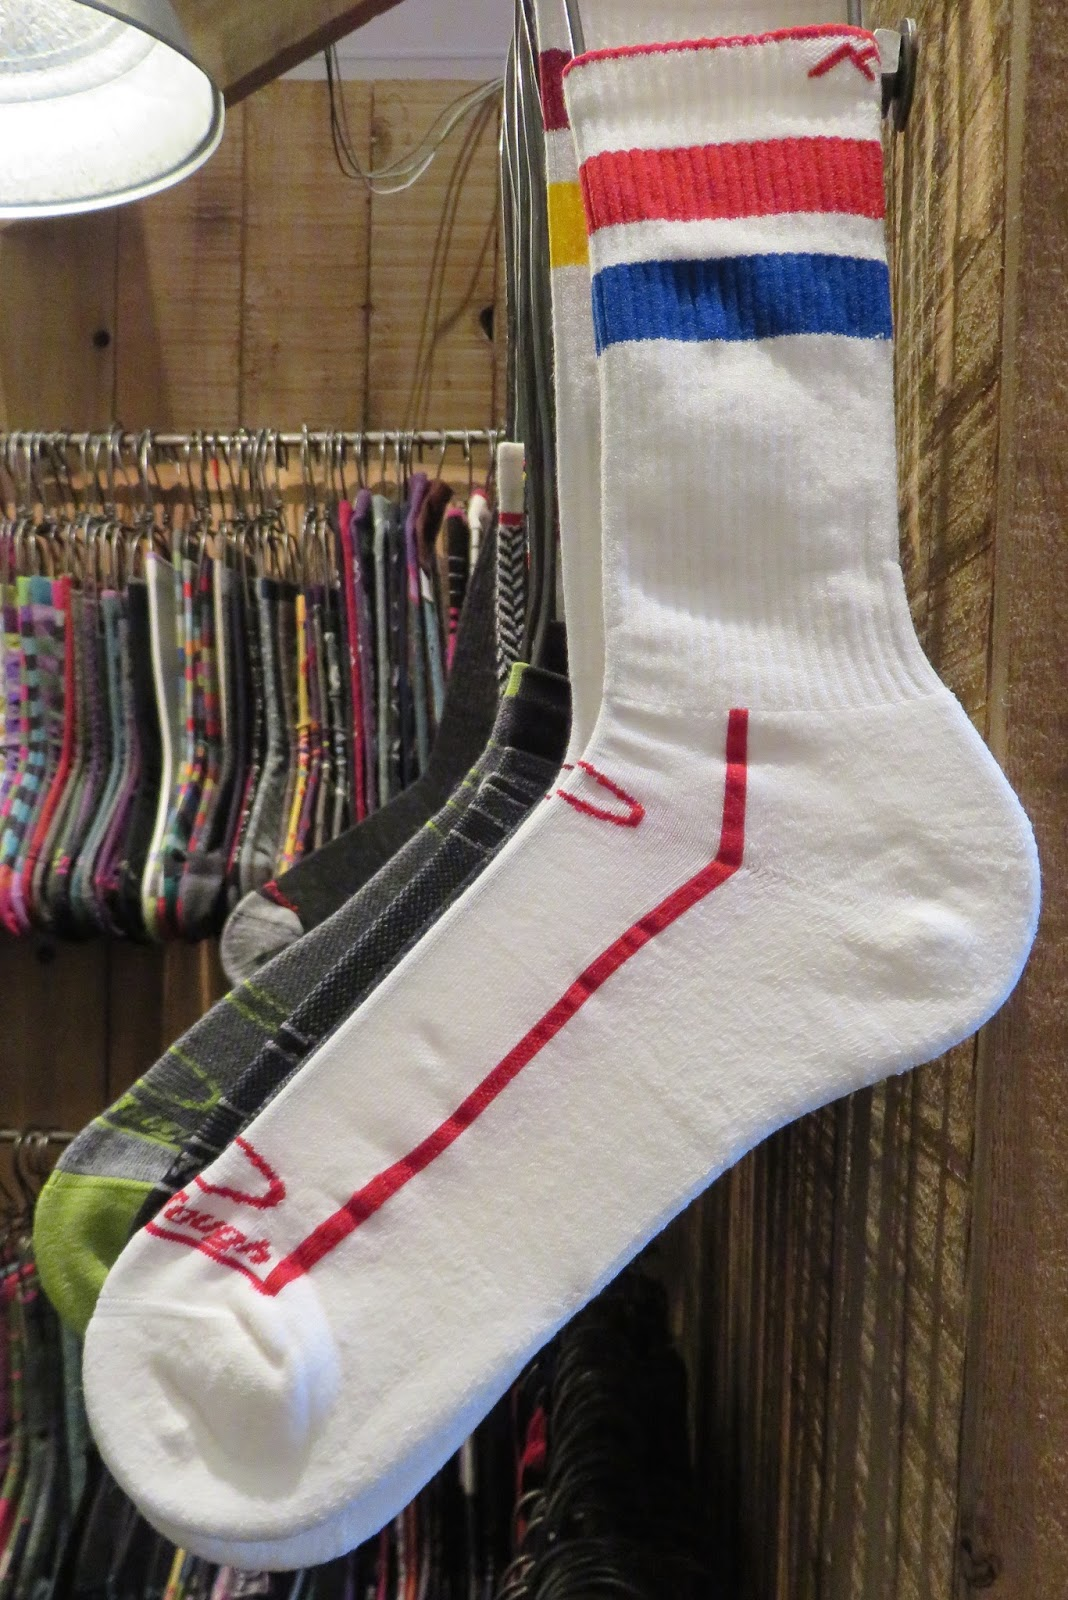 d98c9be8f Made in Vermont-DARN TOUGH s micro fine 17.2 micron merino wool (40%)  -guaranteed for life...Dynamite Stripe Crew Light Cushion-seamless  construction and ...